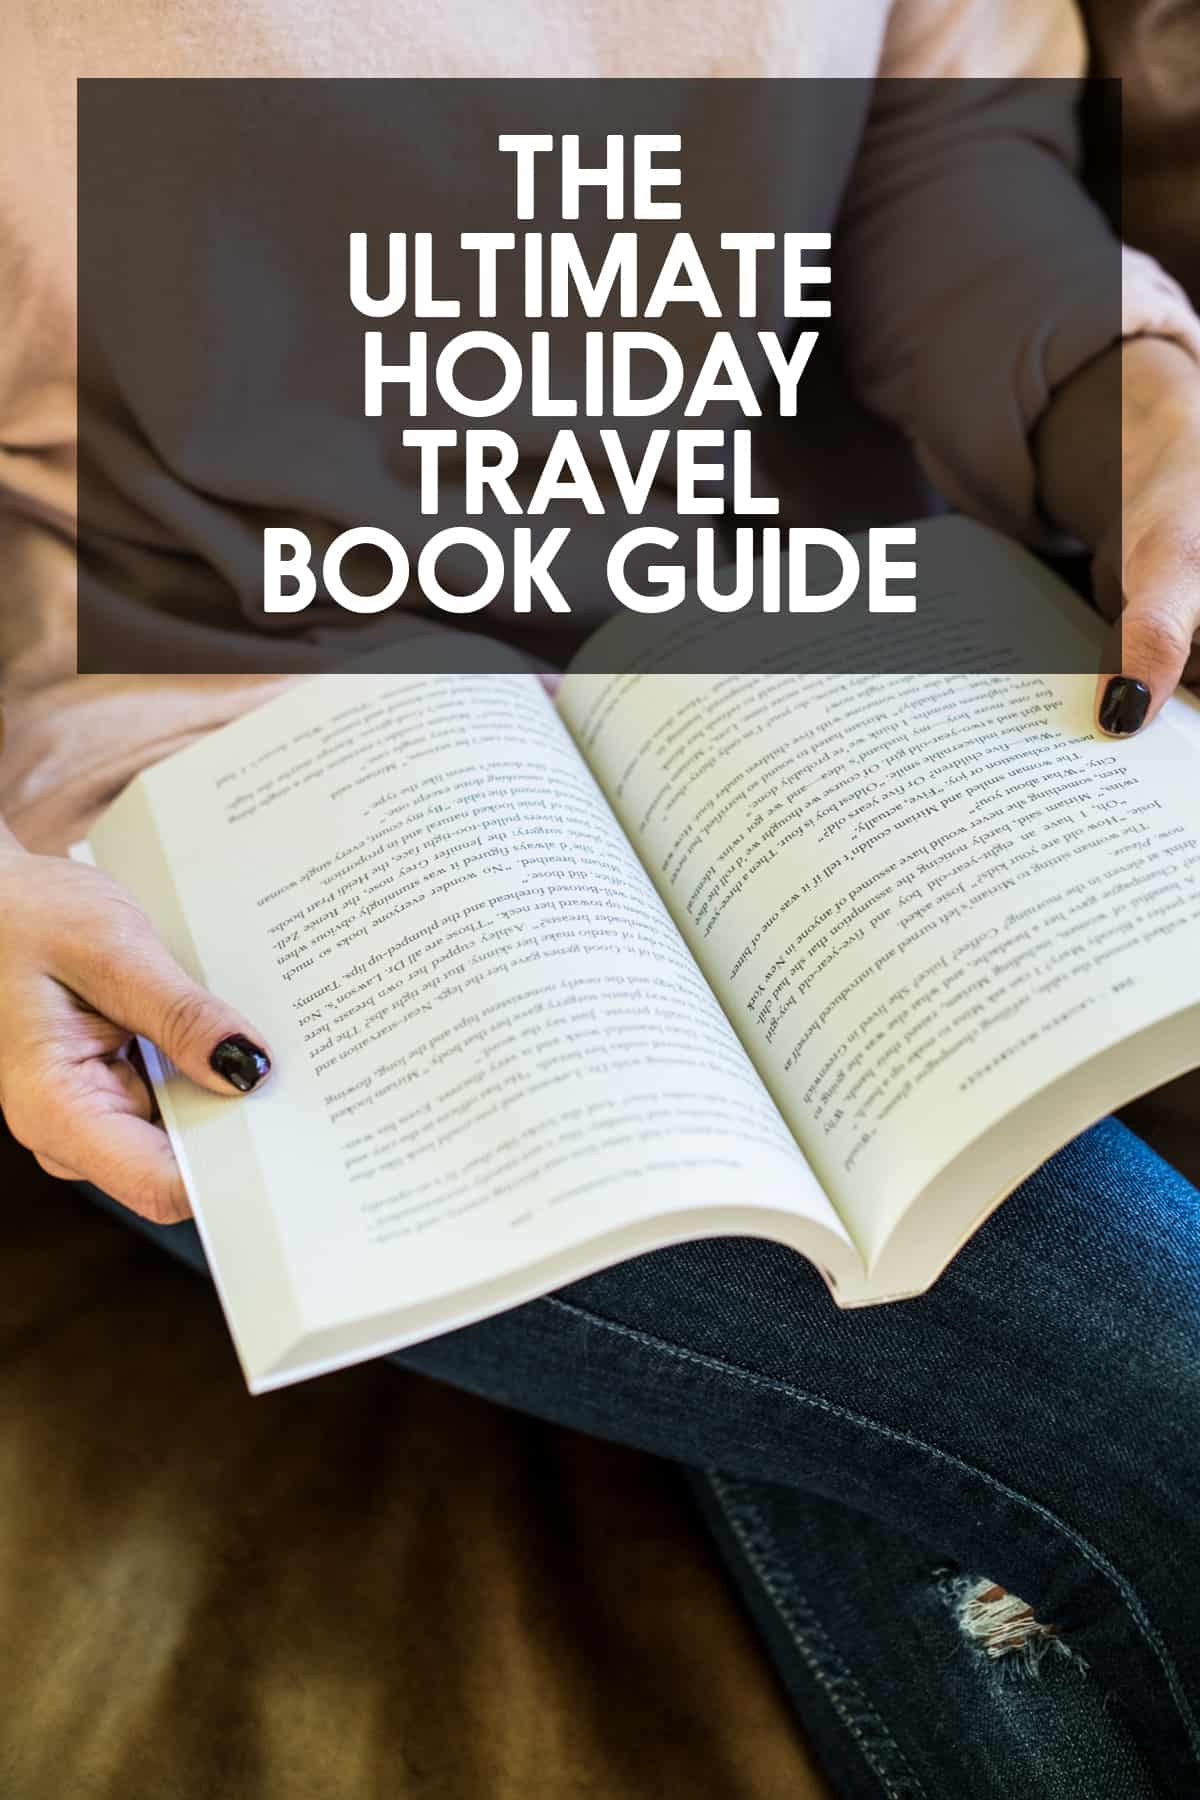 The Ultimate Holiday Travel Book Guide